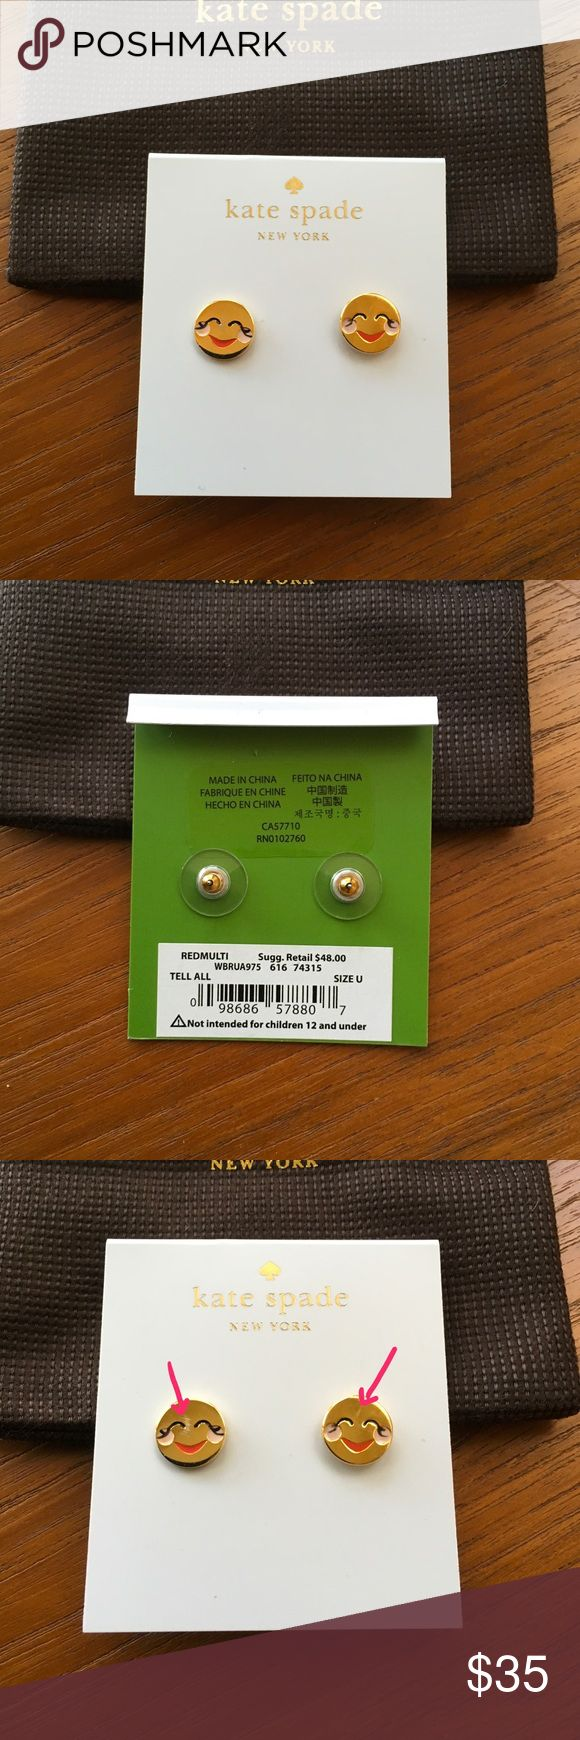 """Kate Spade 'Tell All' Emoji Stud Earrings 3/8"""" diameter. 14k-gold plate/enamel/glass. Both have some slight imperfections (see last photo). No longer available/sold out. kate spade Jewelry Earrings"""